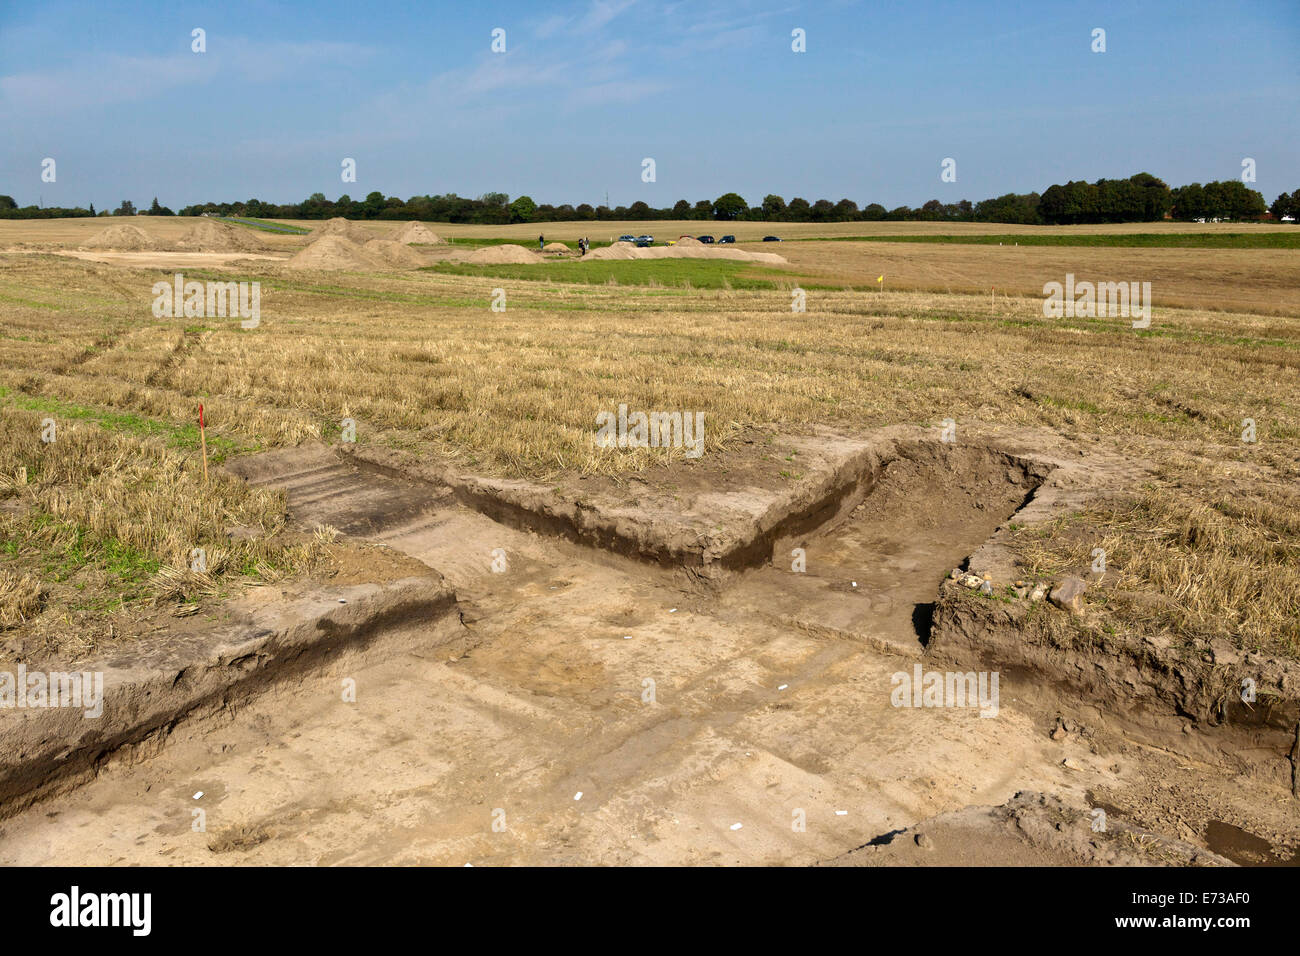 Koege, Denmark. 5th September, 2014.  The final findings of the Eastern gate (photo, foreground) was absolutely - Stock Image